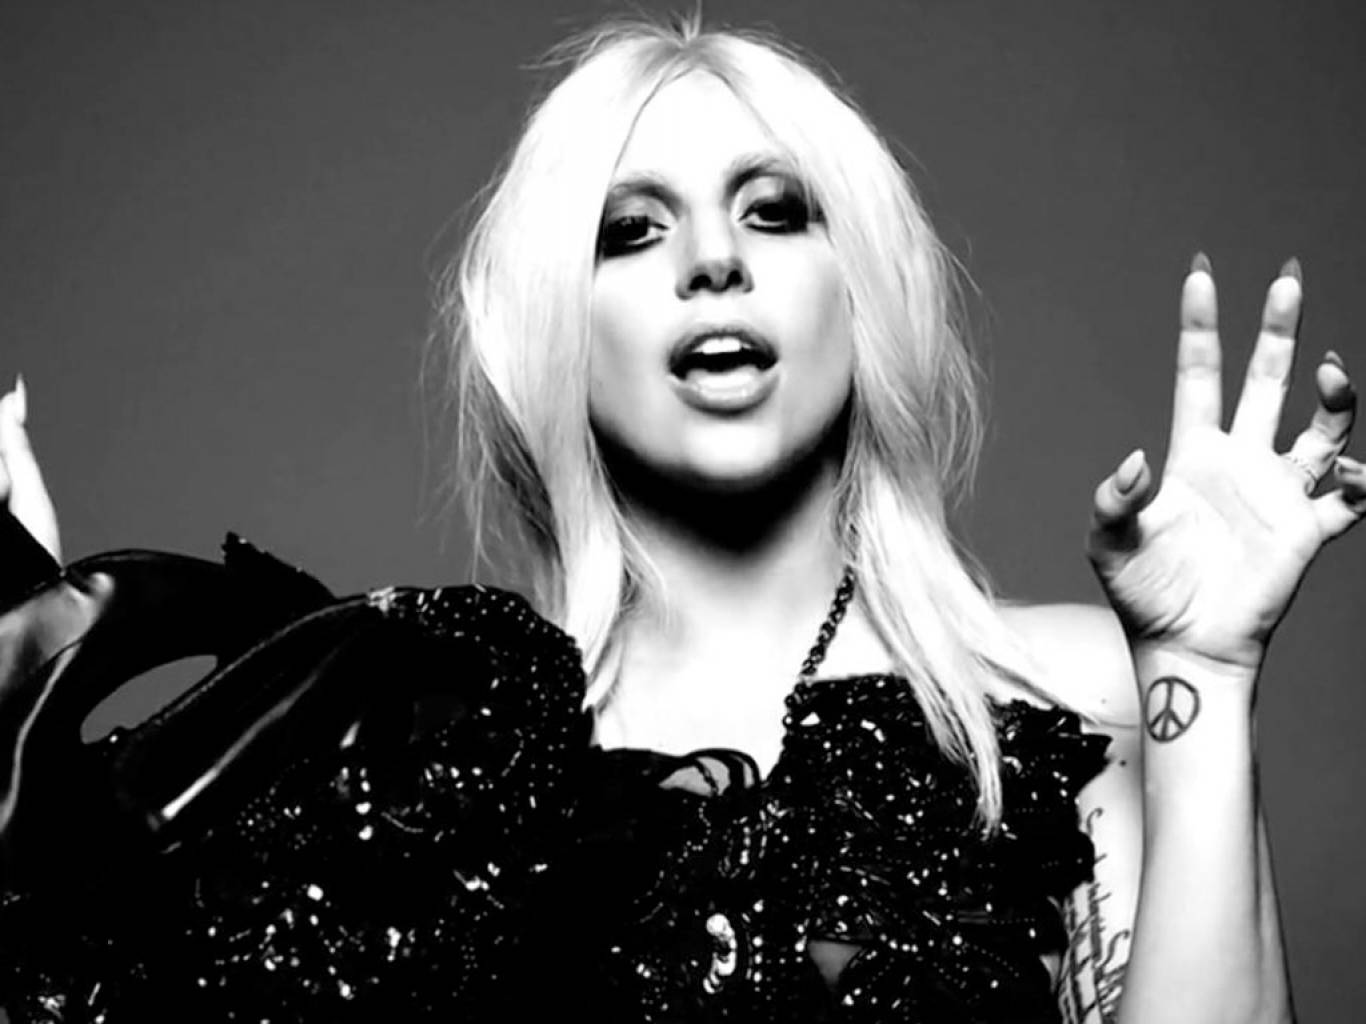 Lady Gaga Hd Wallpapers Latest Lady Gaga Wallpapers Hd